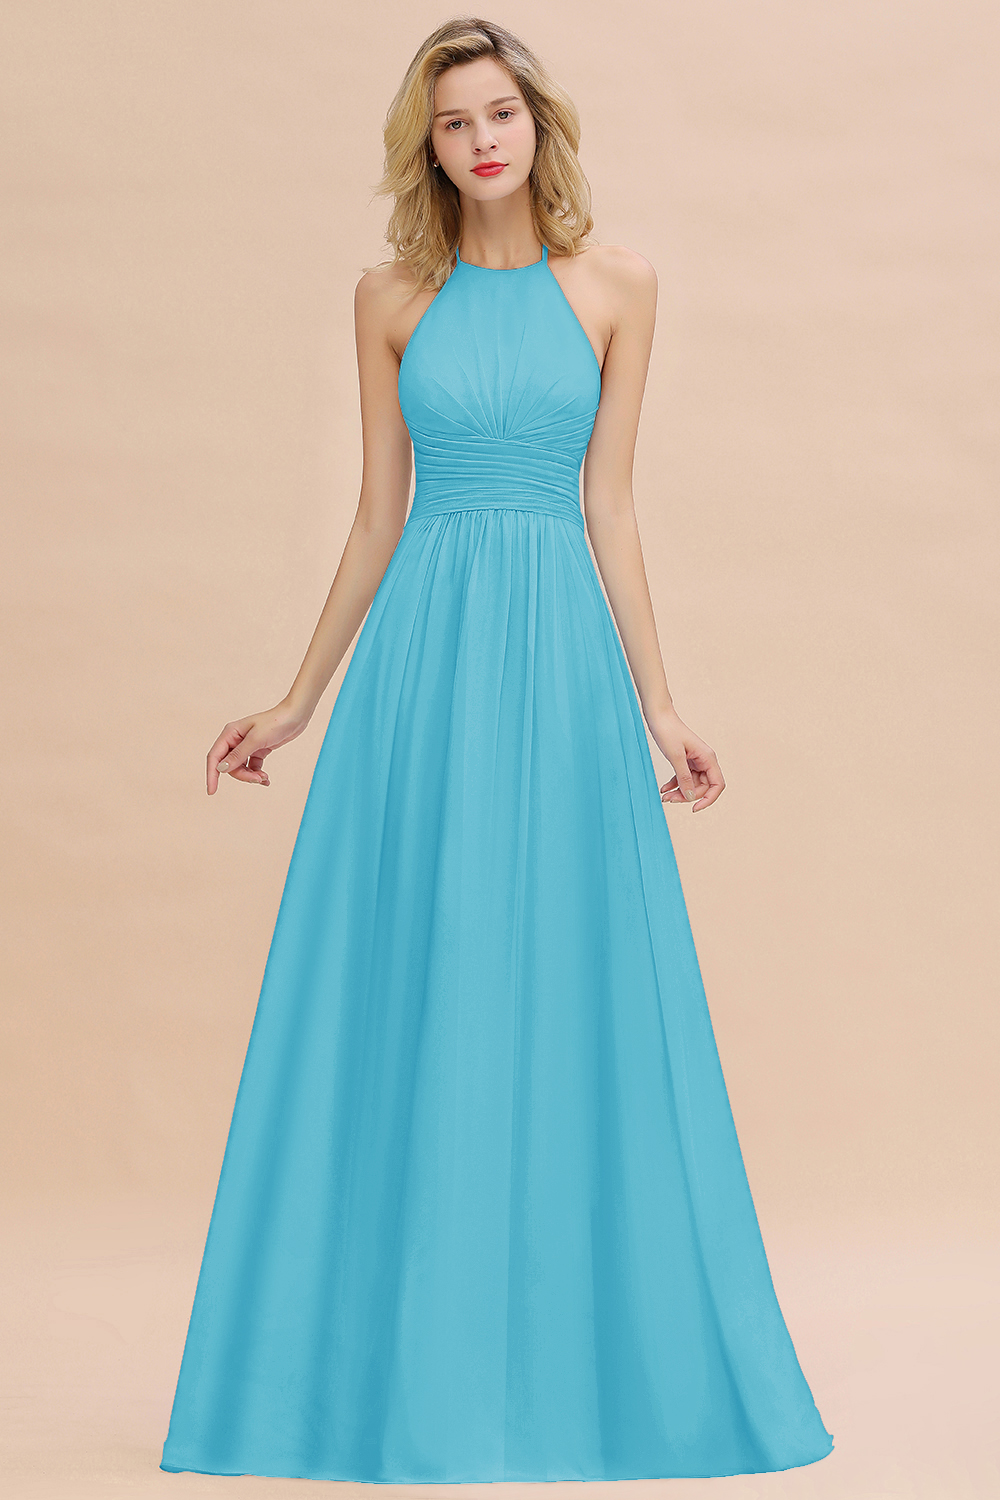 BMbridal Glamorous Halter Backless Long Affordable Bridesmaid Dresses with Ruffle